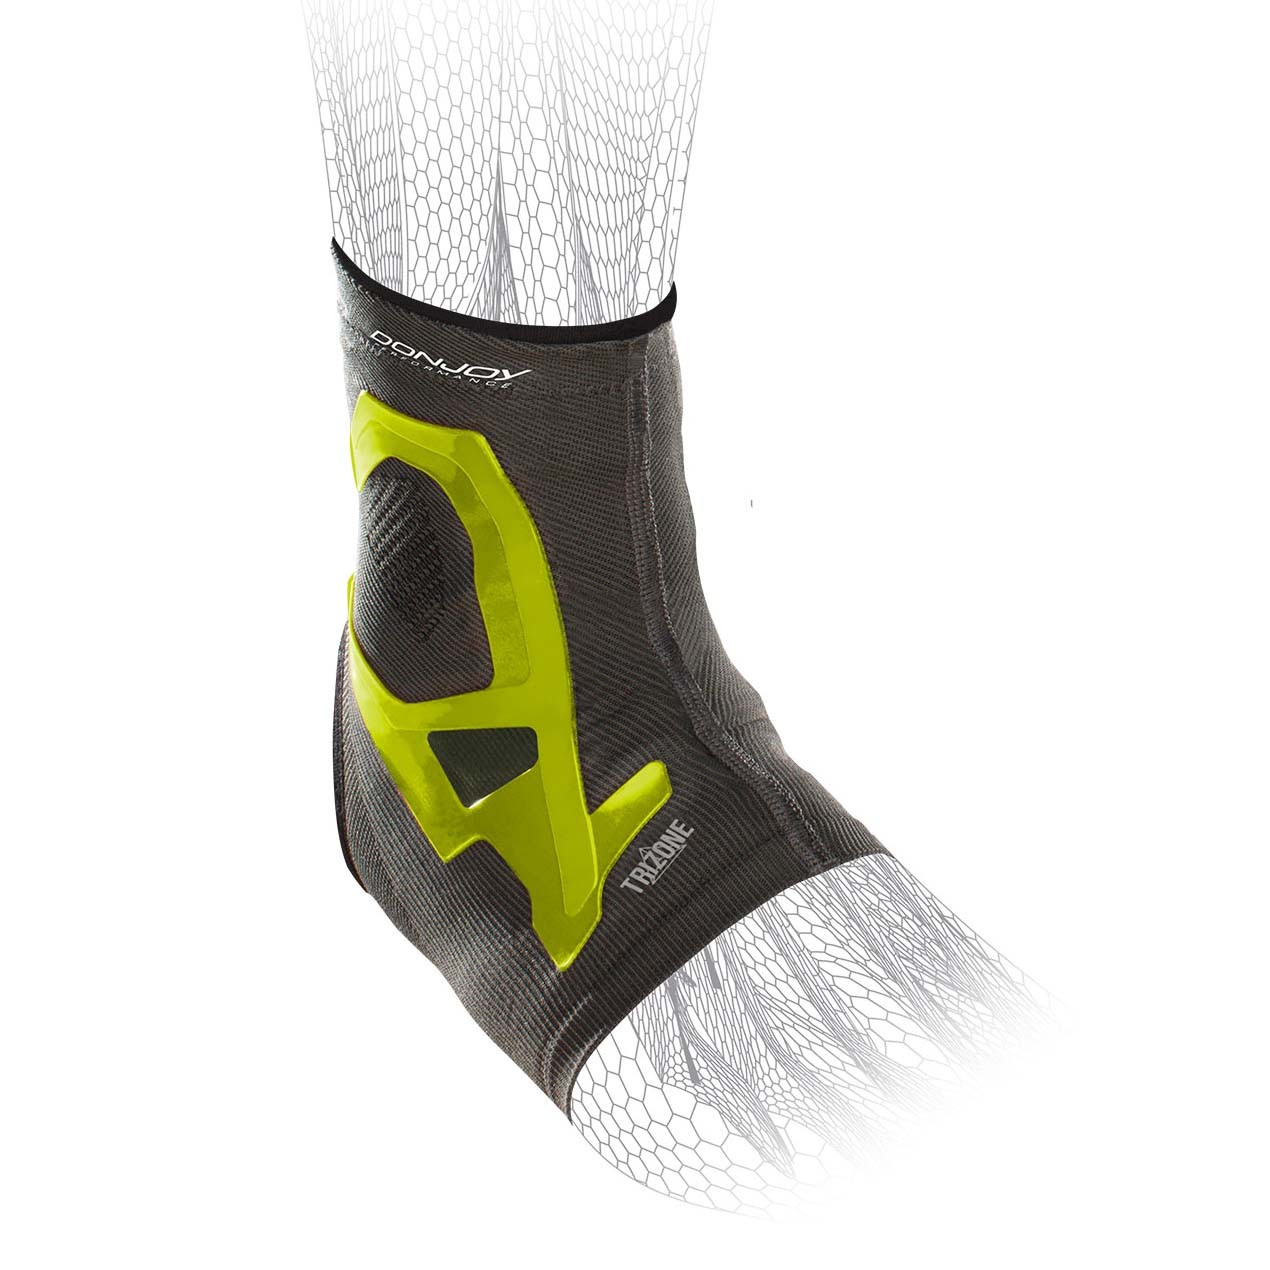 TriZone Ankle Support - Slime - Hex